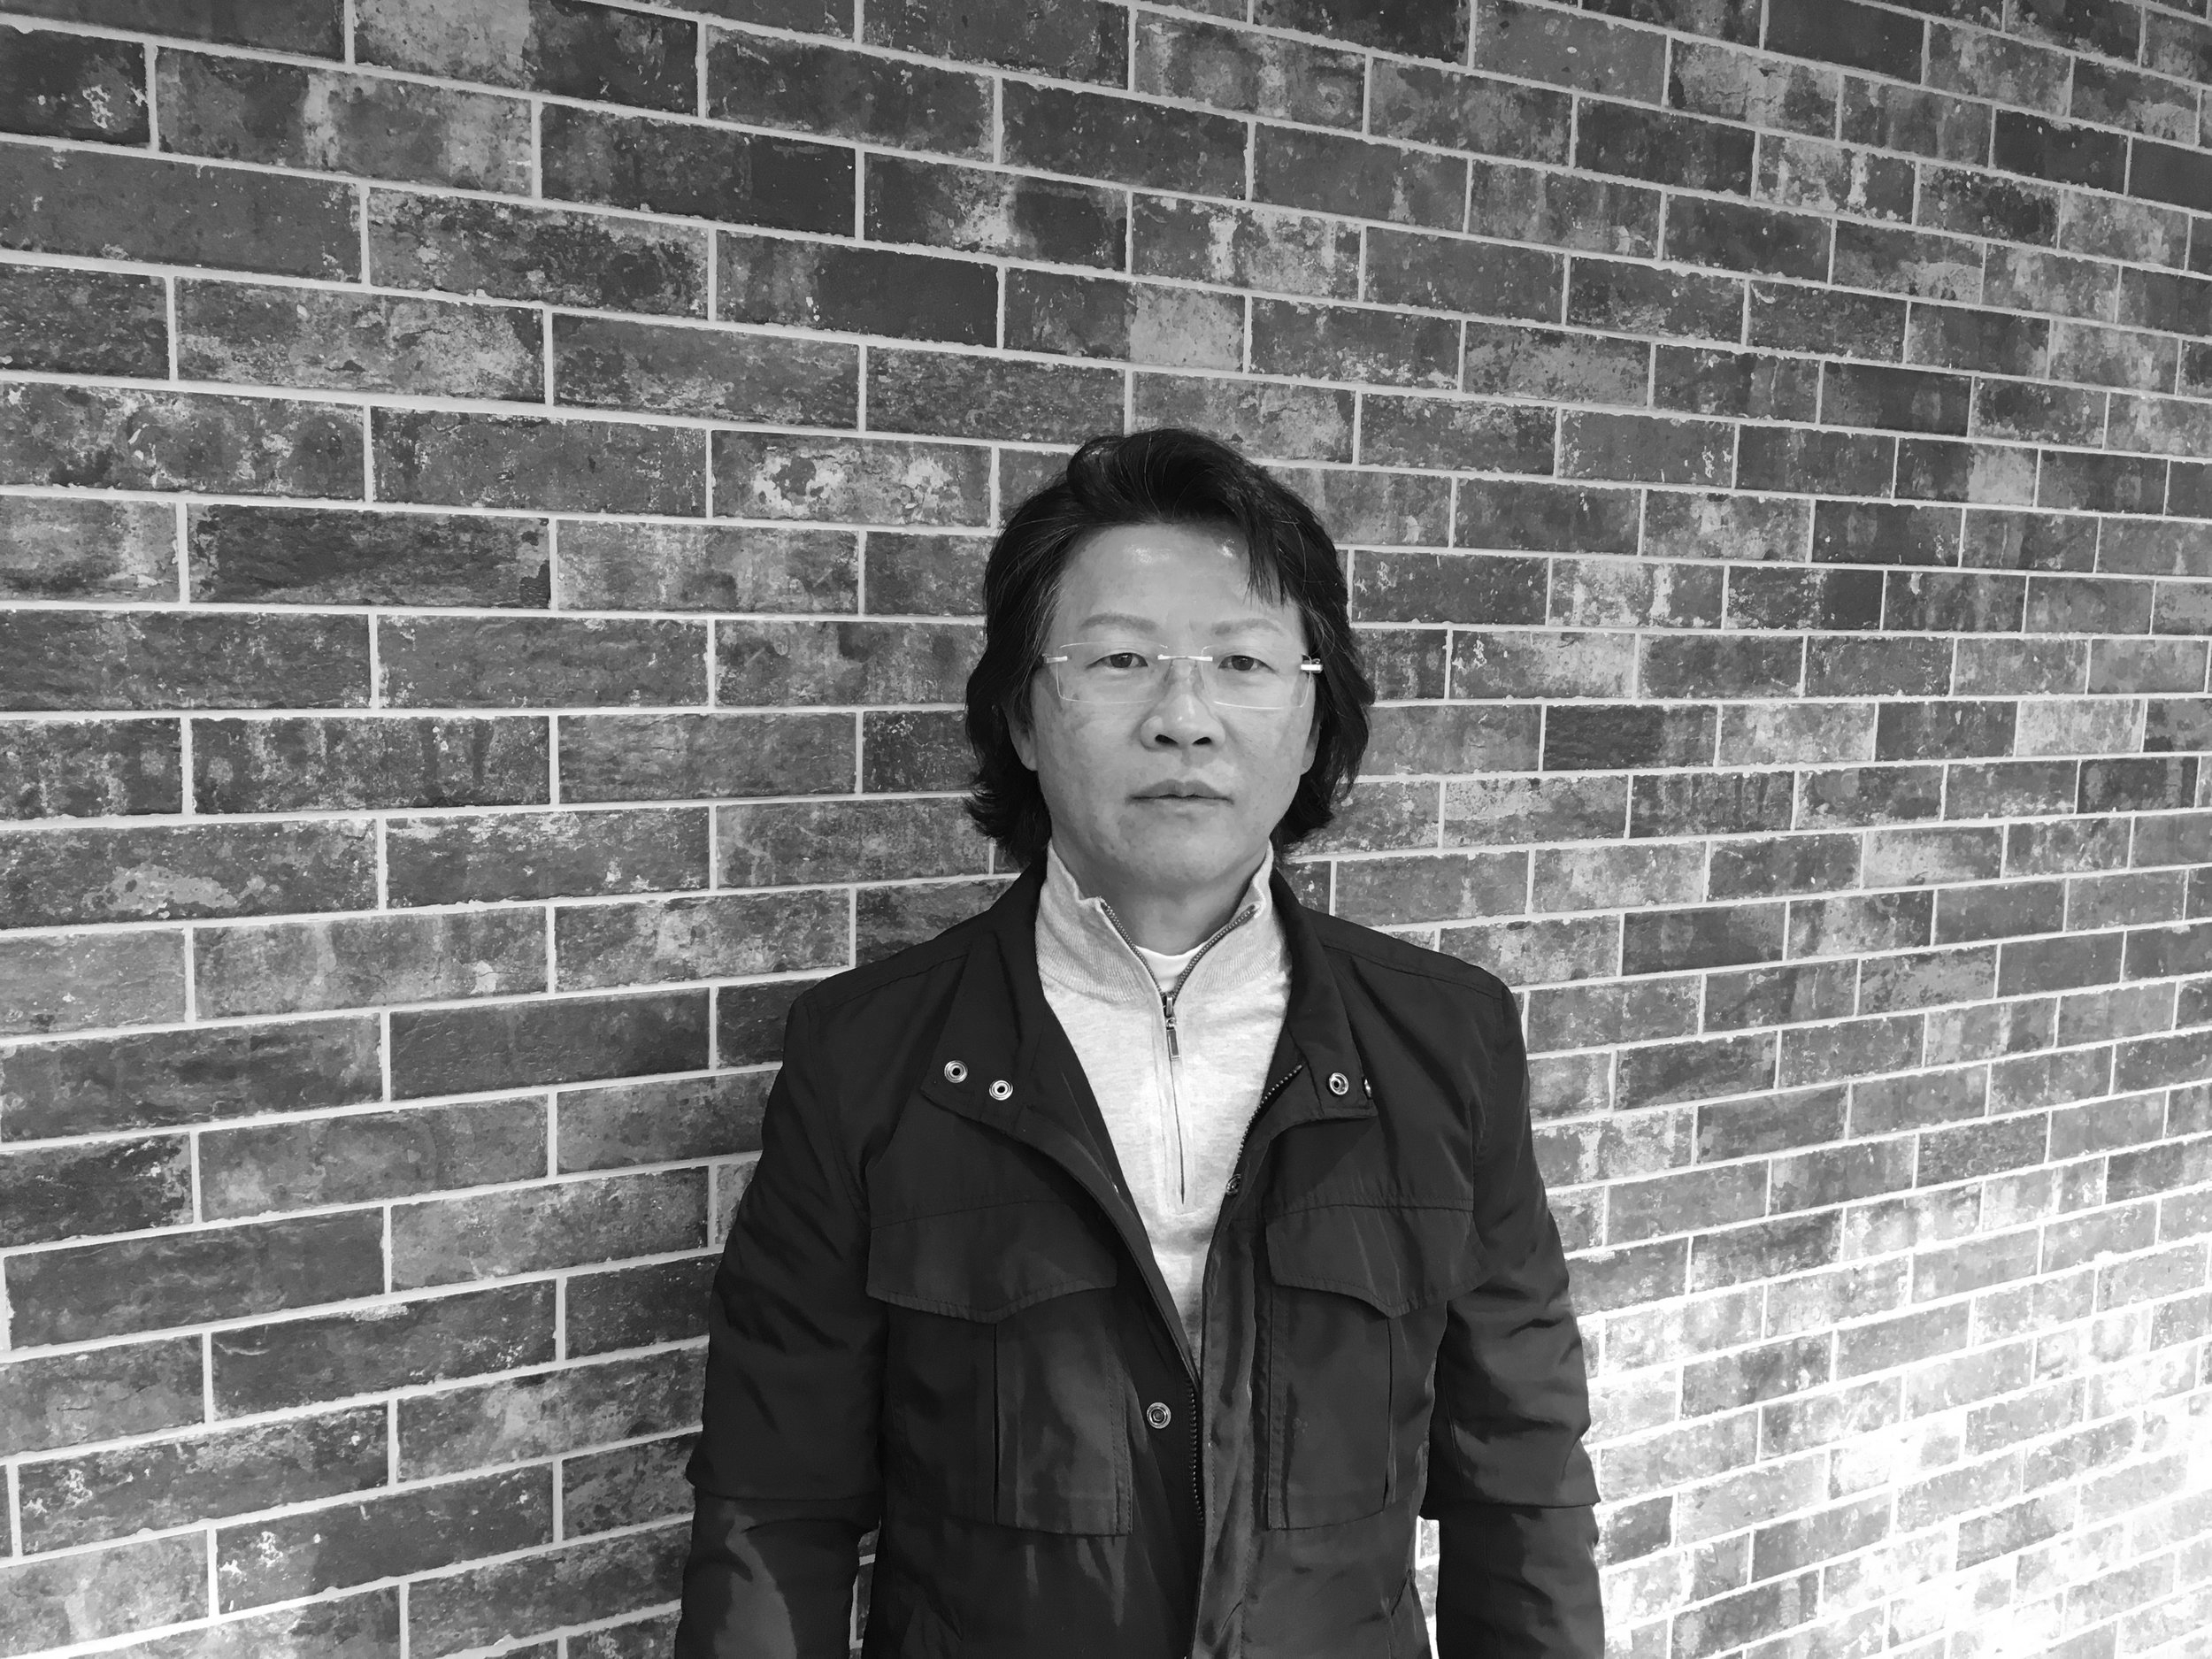 Robert Kim - Senior Architect & Project Designer – Mr. Kim graduated from Iowa State University in 1987 with a Bachelor of Architecture and is licensed in the State of Illinois and a current member of ALA. He has over 31 years of experience in design and management, for full service hotels, office complex, skilled nursing, assisted living, congregate living facilities and senior living facilities.